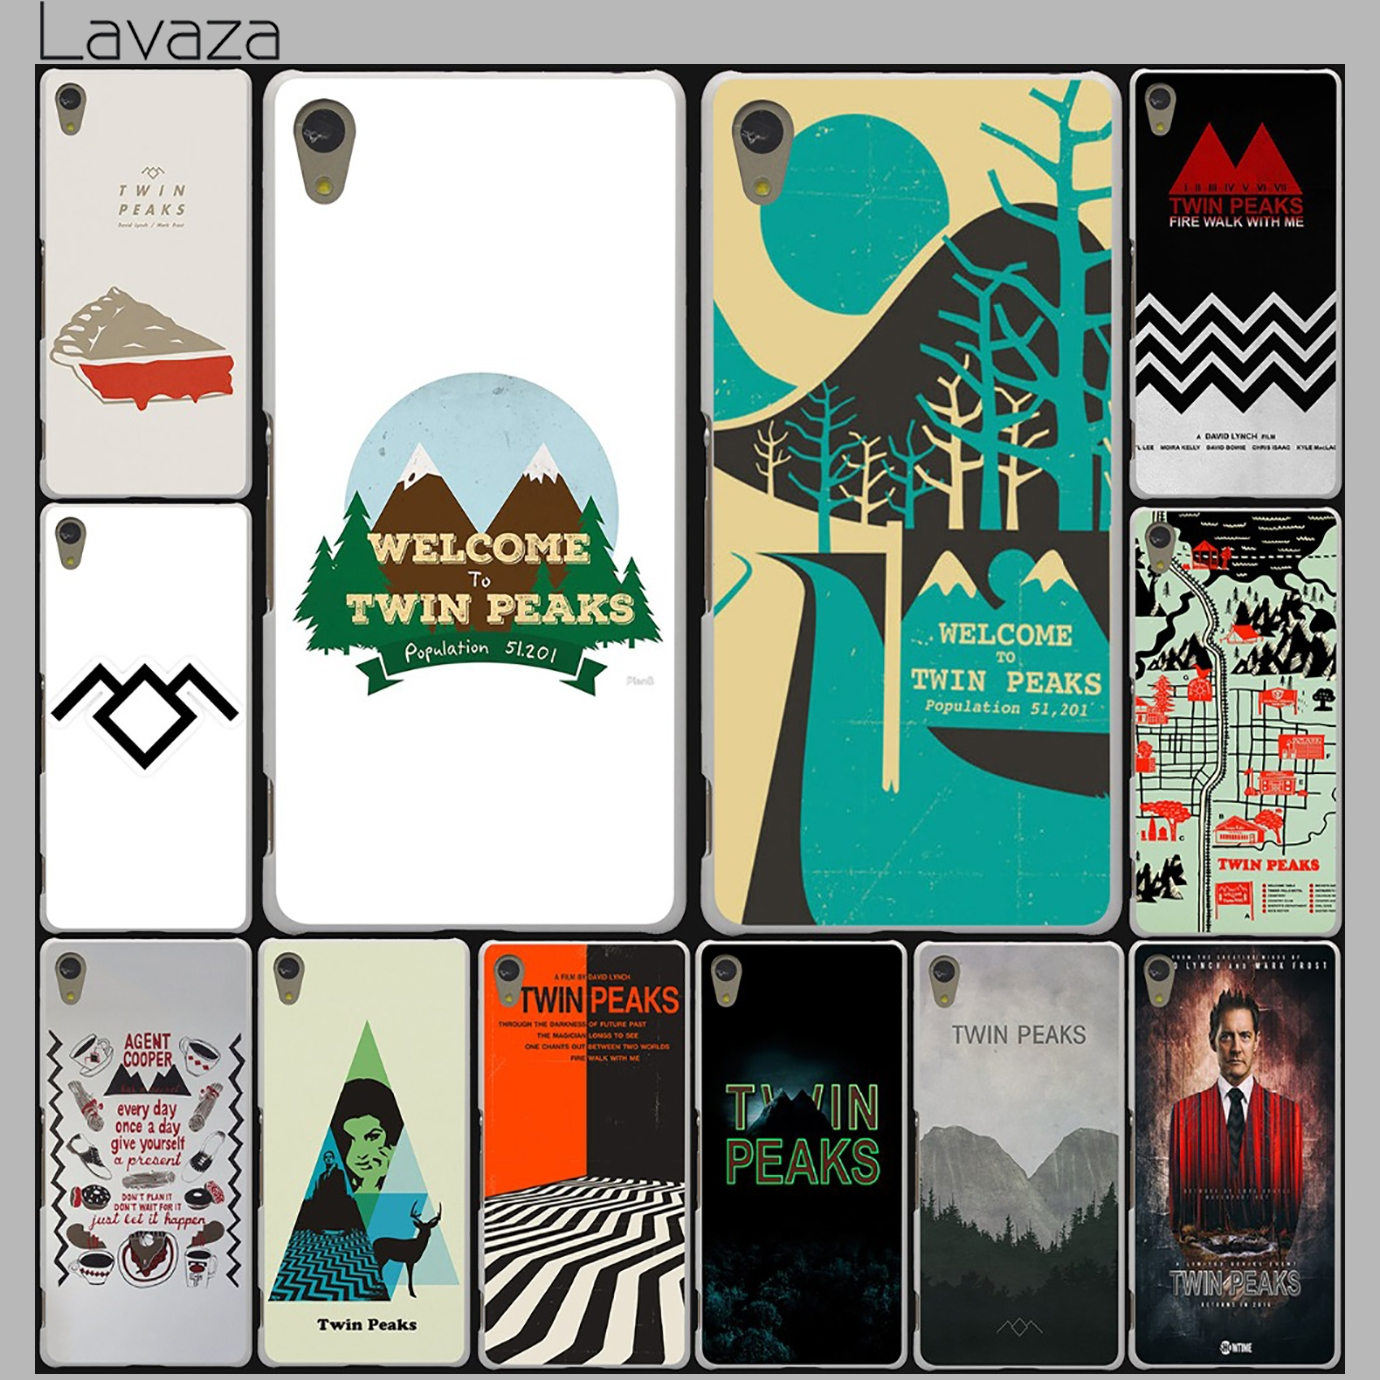 Lavaza Welcome To Twin Peaks Case for Lenovo Vibe K3 K4 K5 K6 Note A1000 A2010 S90 S850 S60 A536 A328 X3 Lite ZUK Z2 P1